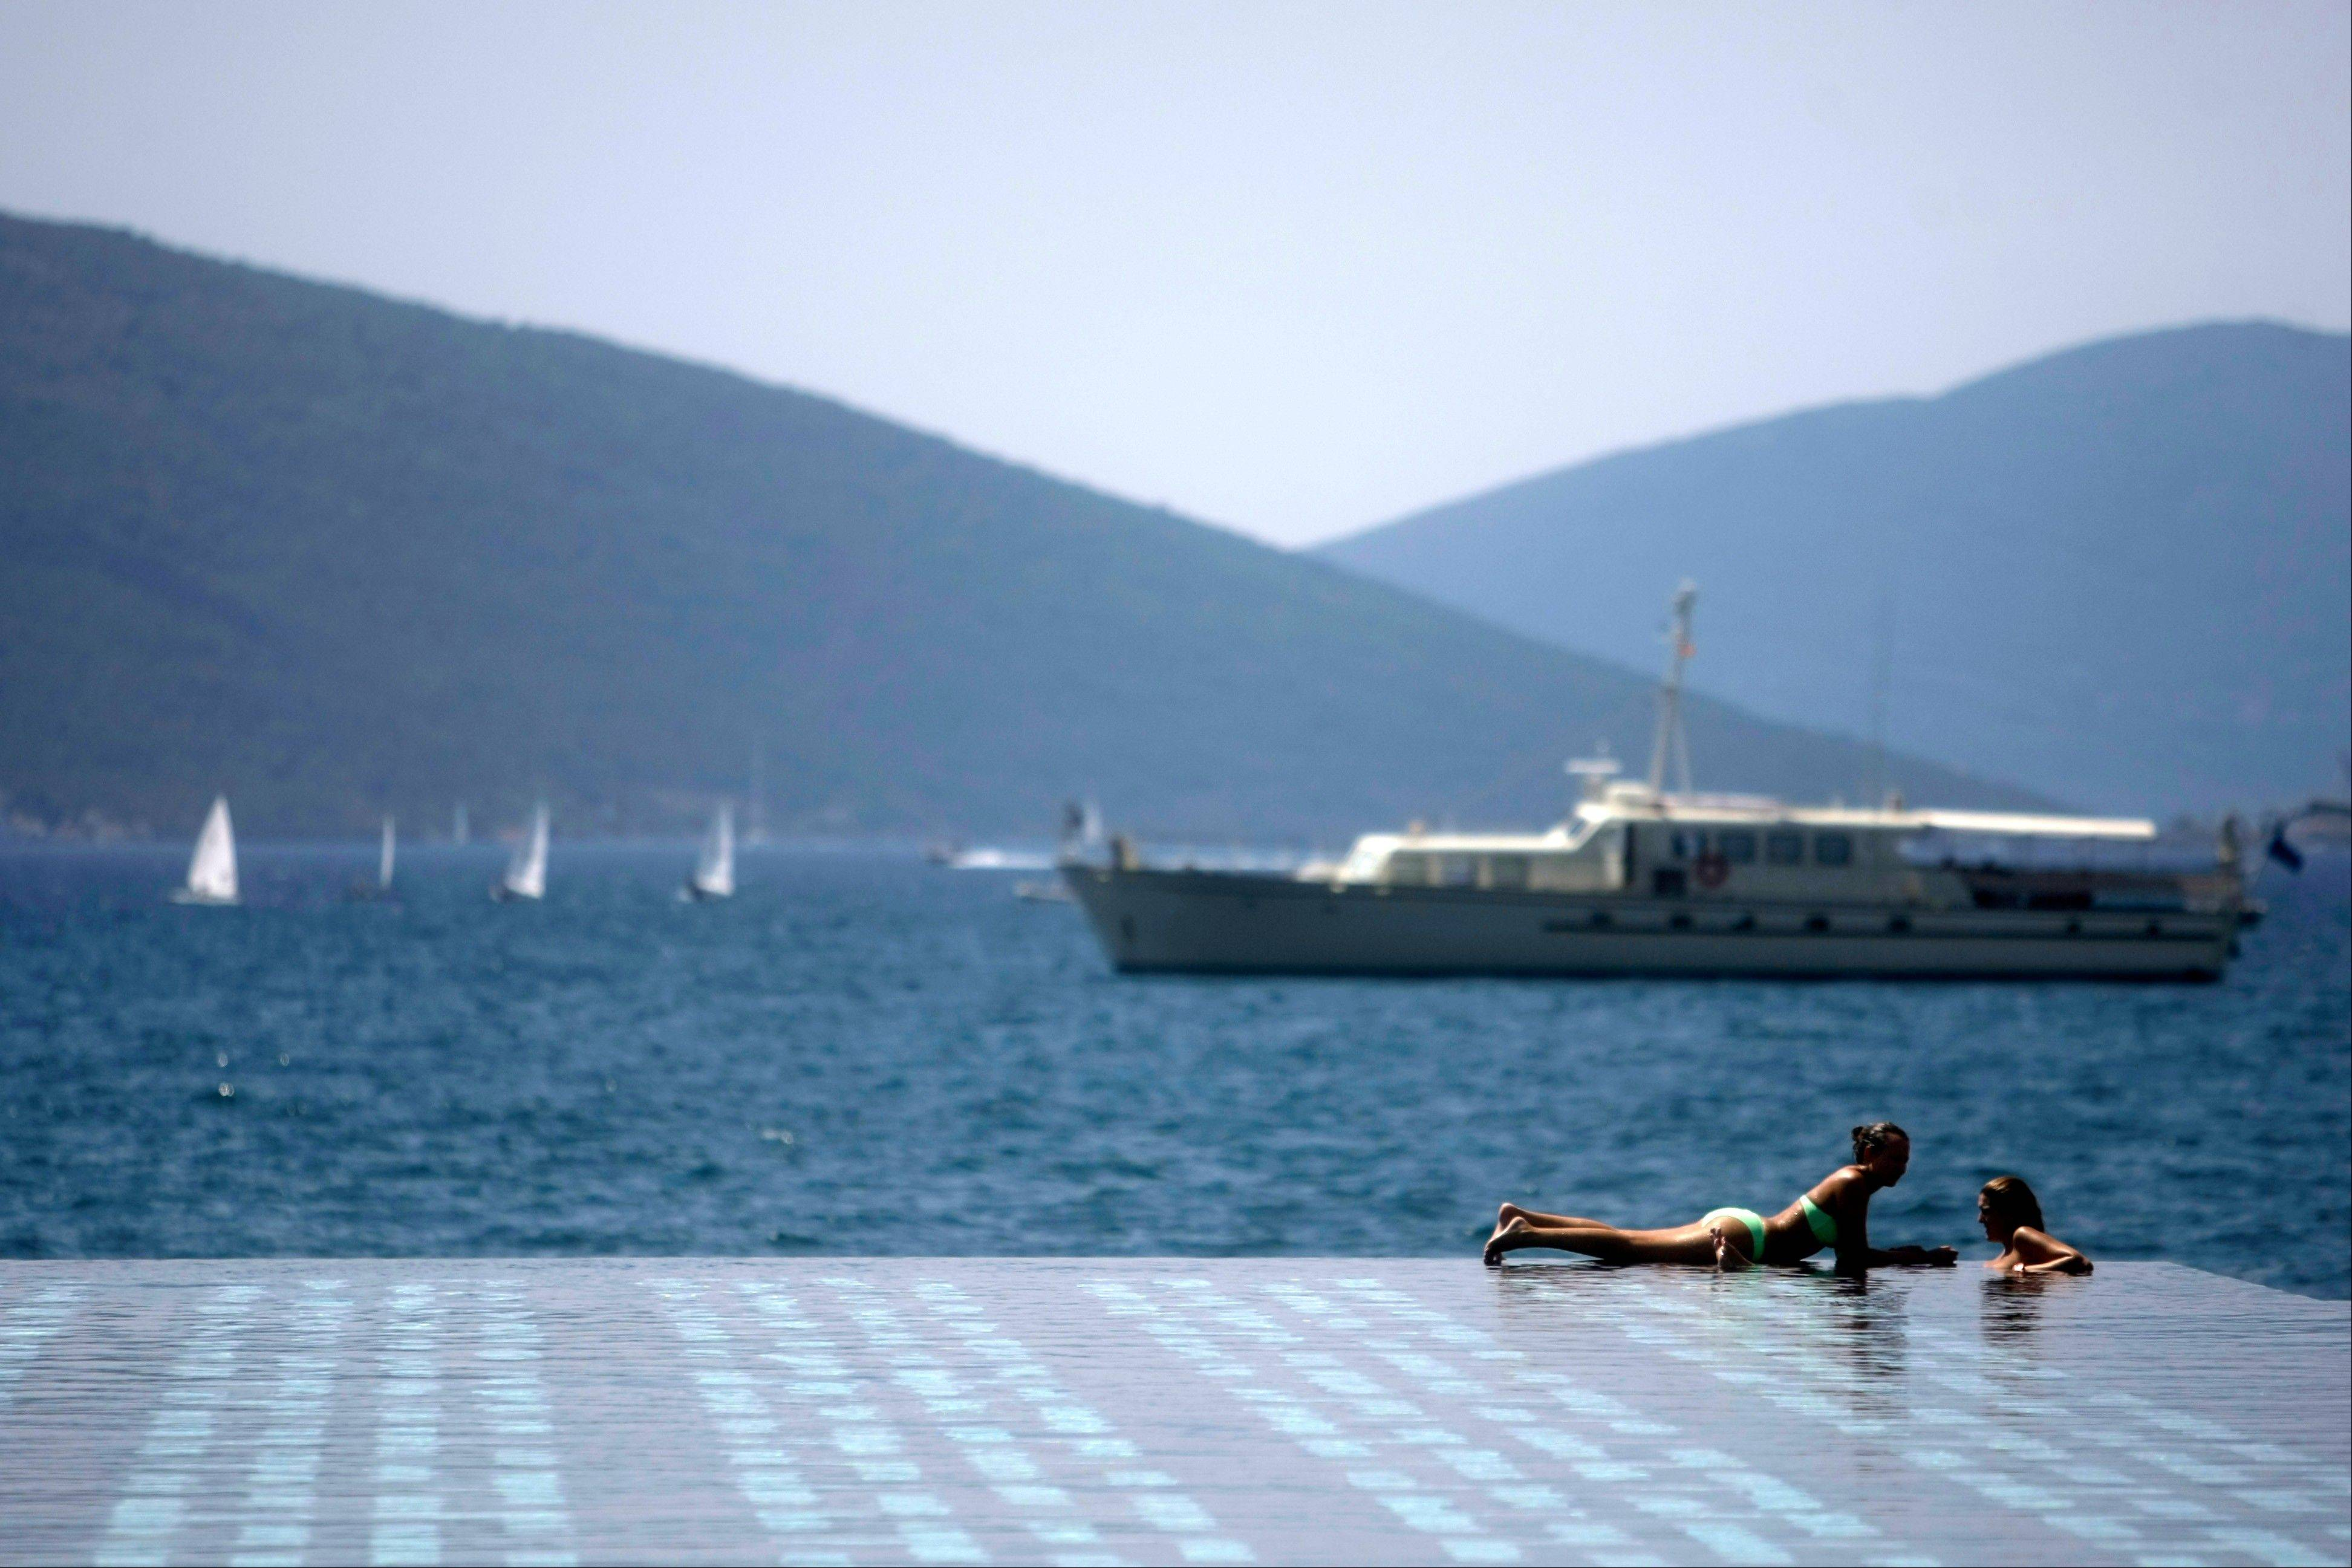 Two women sunbathe at the Porto Montenegro resort next to the town of Tivat in Montenegro.